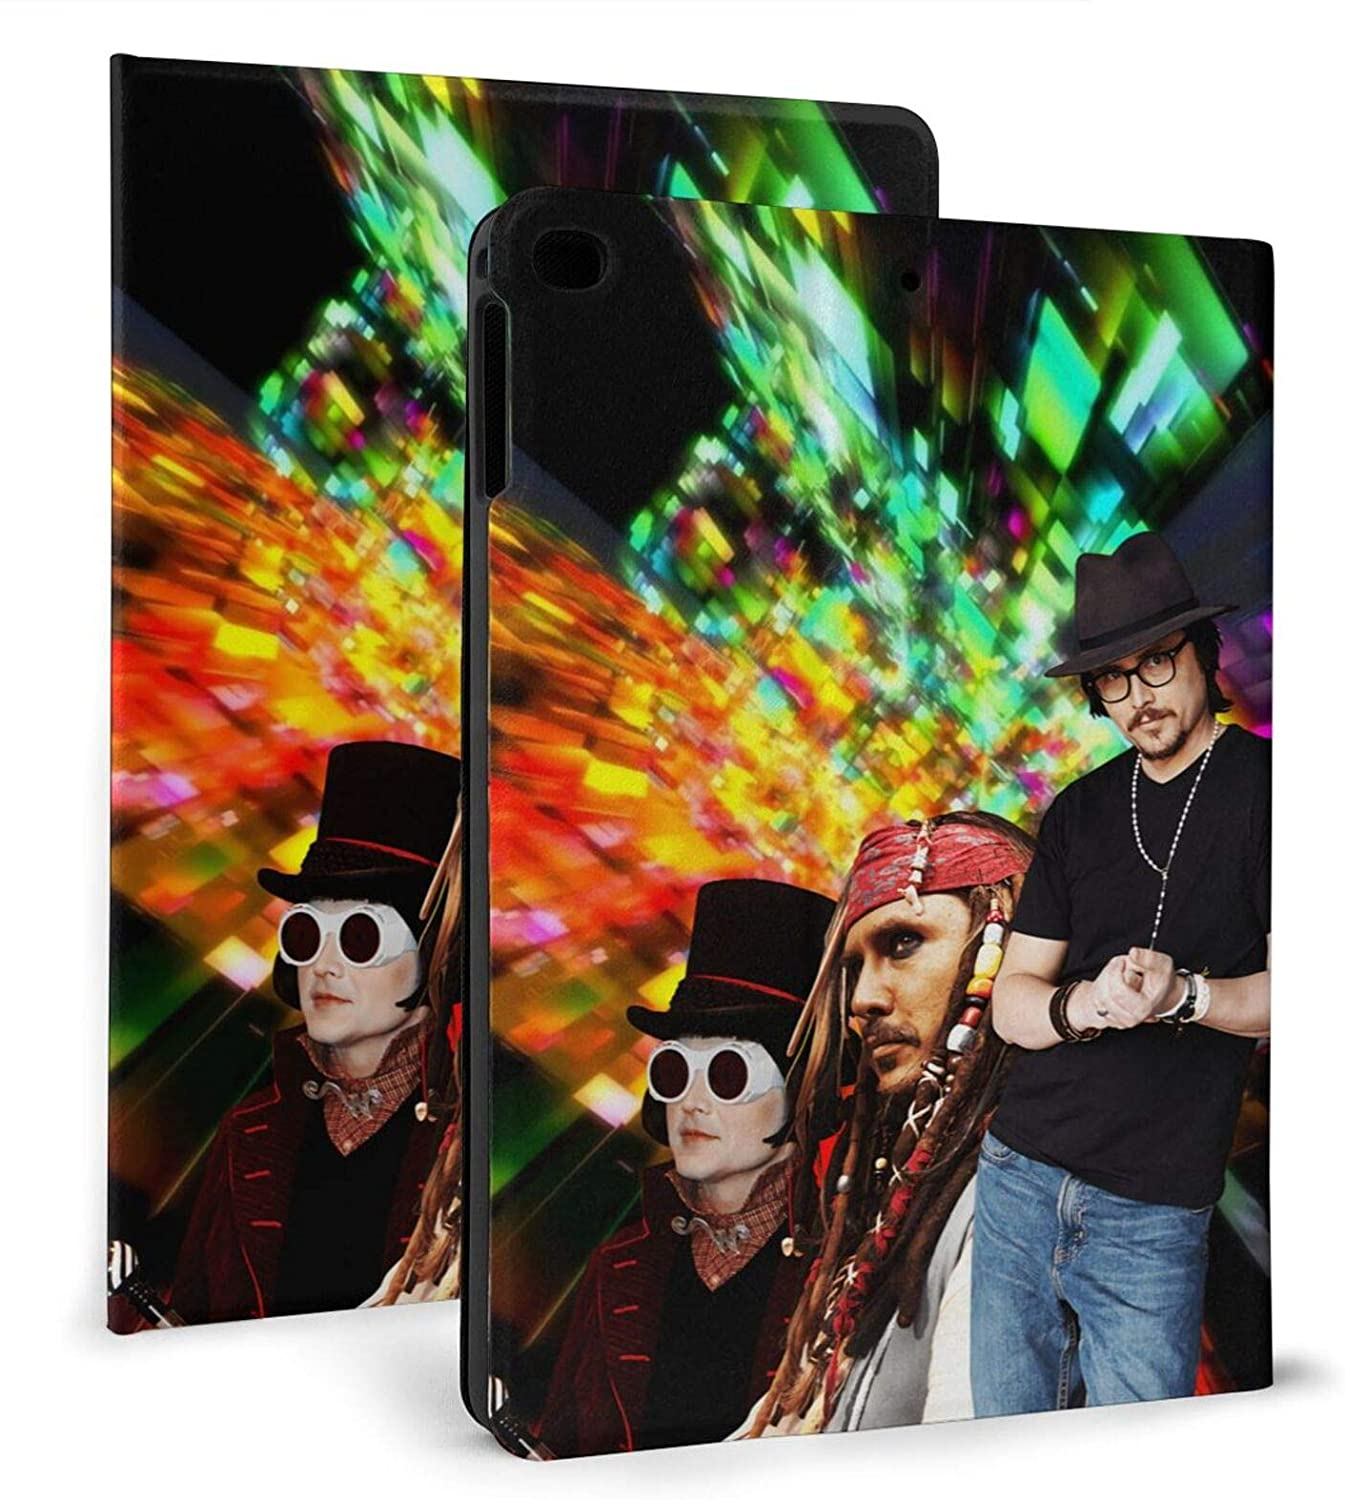 Johnny Depp PU Ipad Case Smart Cover with Auto Sleep/Wake Multiple Viewing Angles Ipad air1/2 9.7